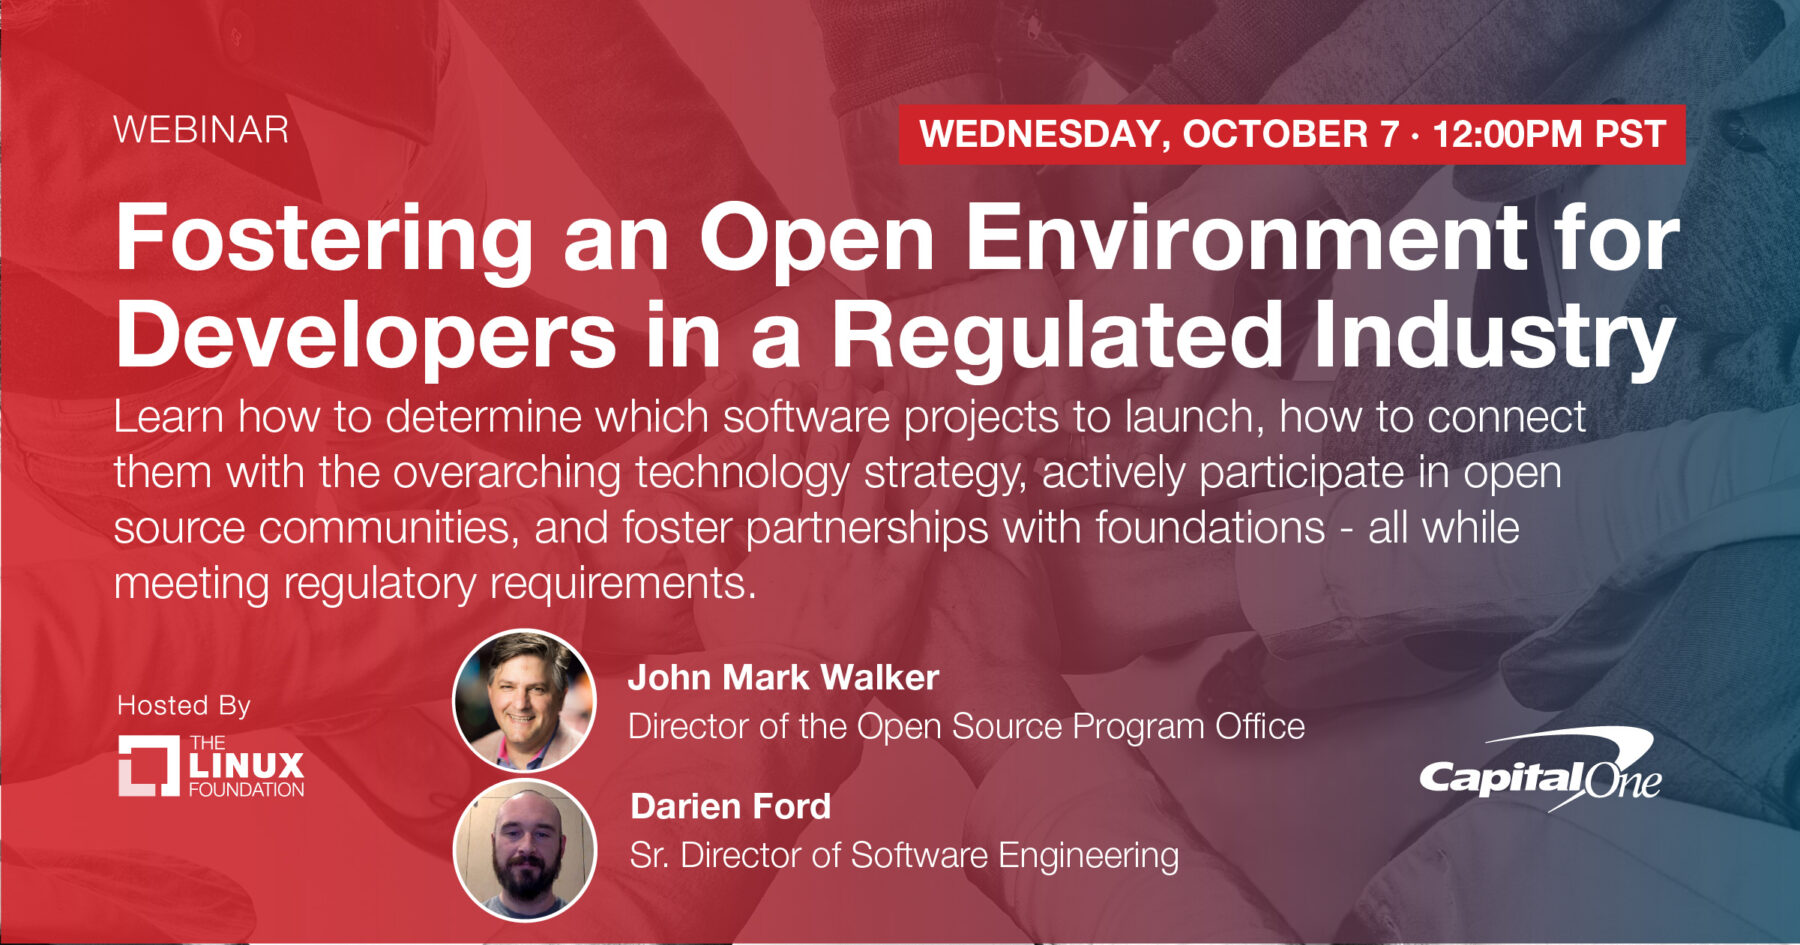 Webinar - Fostering an Open Environment for Developers in a Regulated Industry